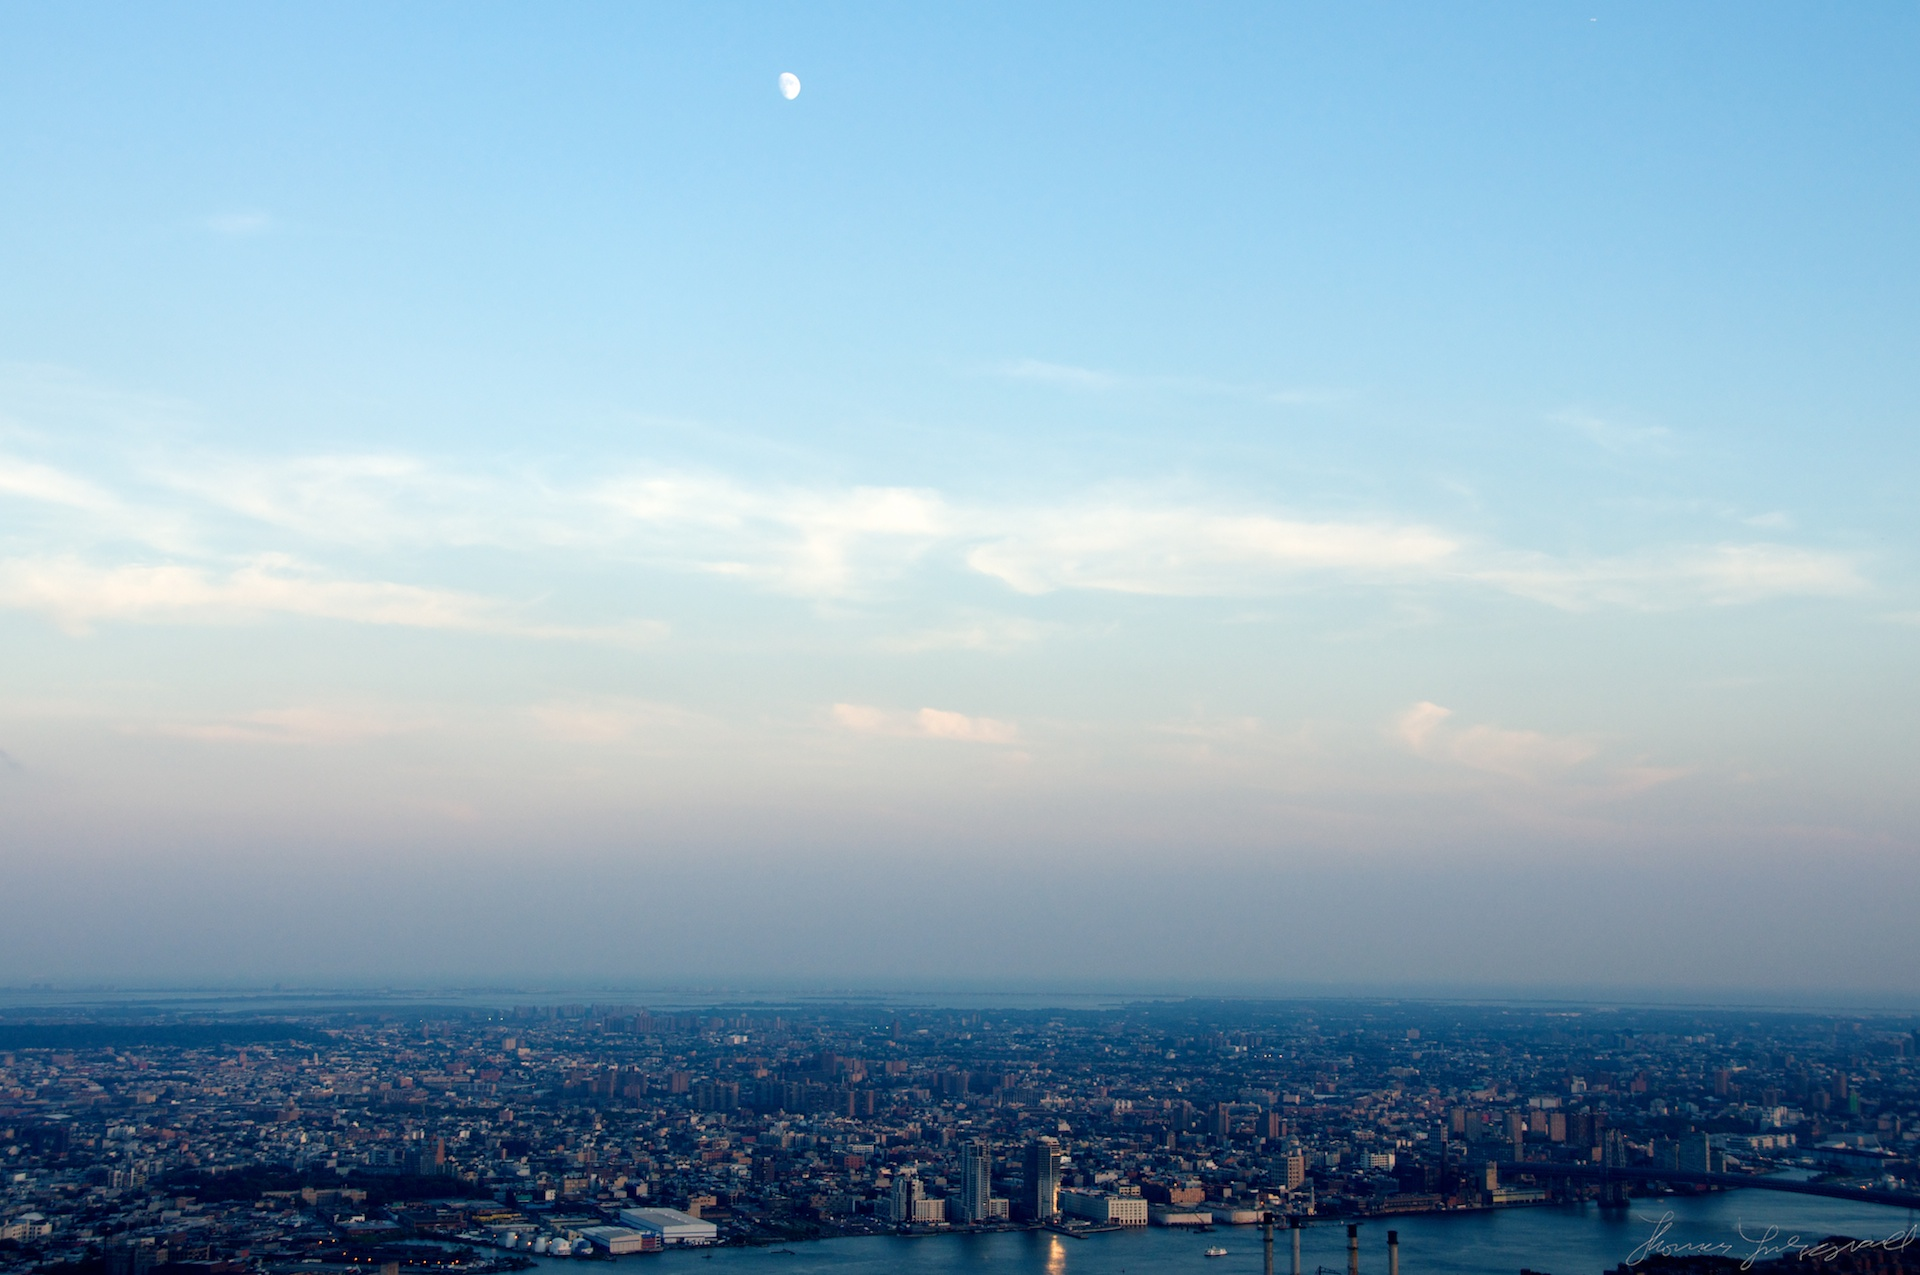 The Moon and New York City - An image